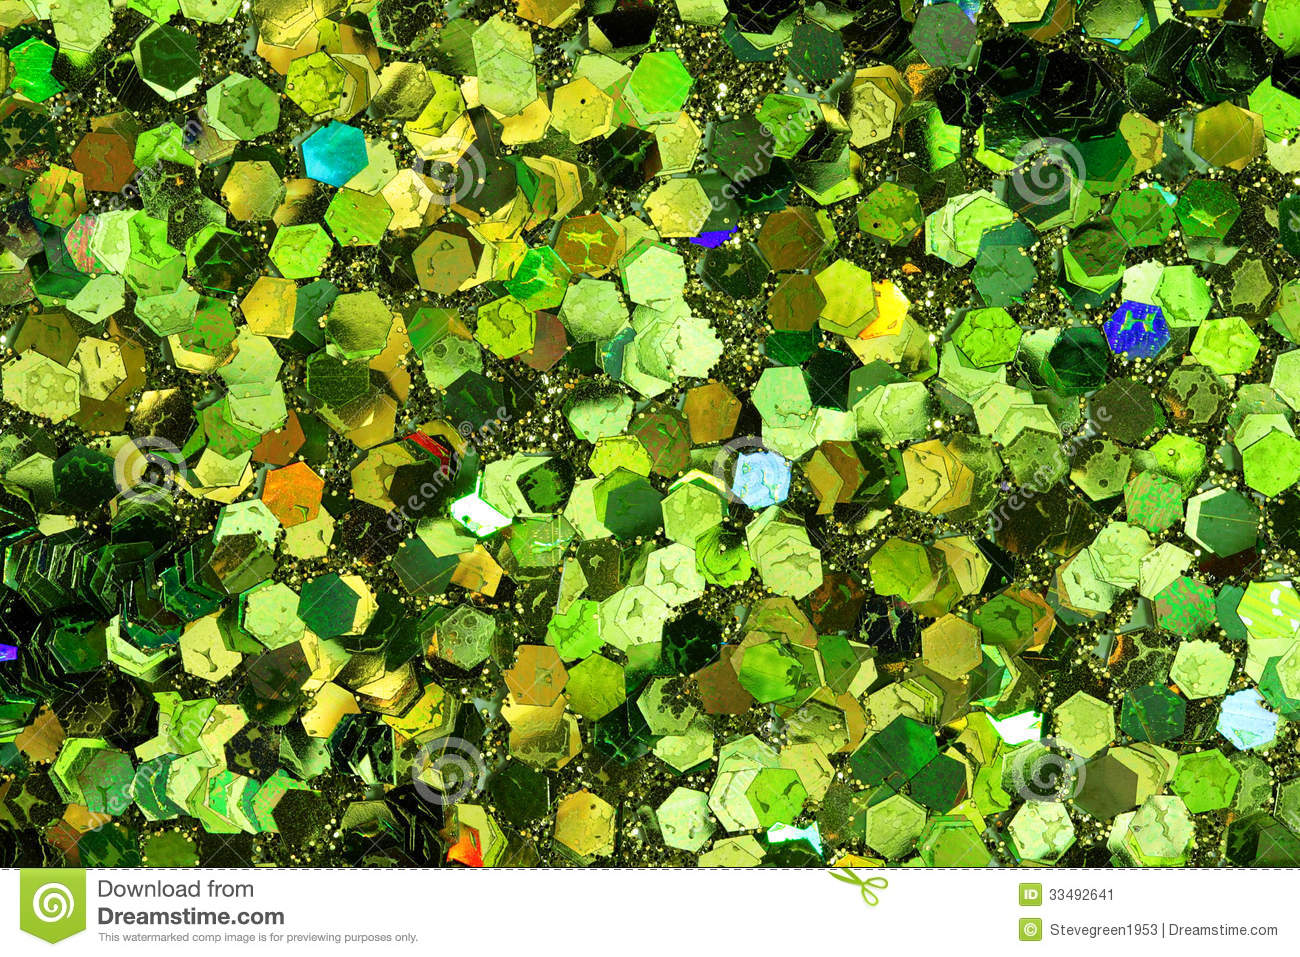 Sparkly Lime Green Backgrounds green glitter background stock image 1300x957